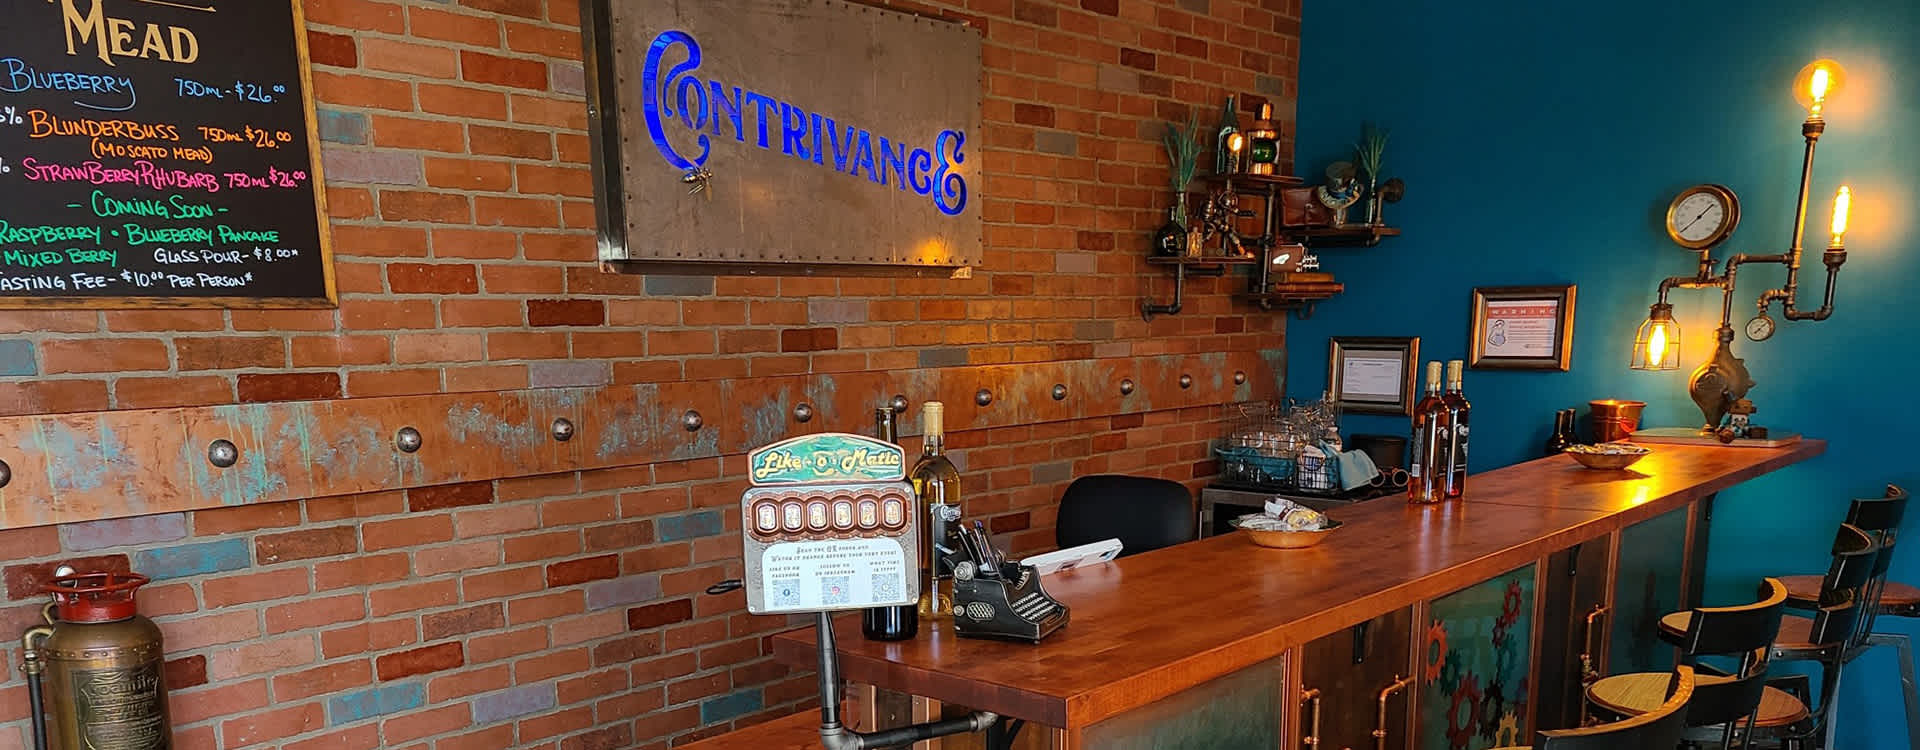 The Contrivance Meadery Tasting Room